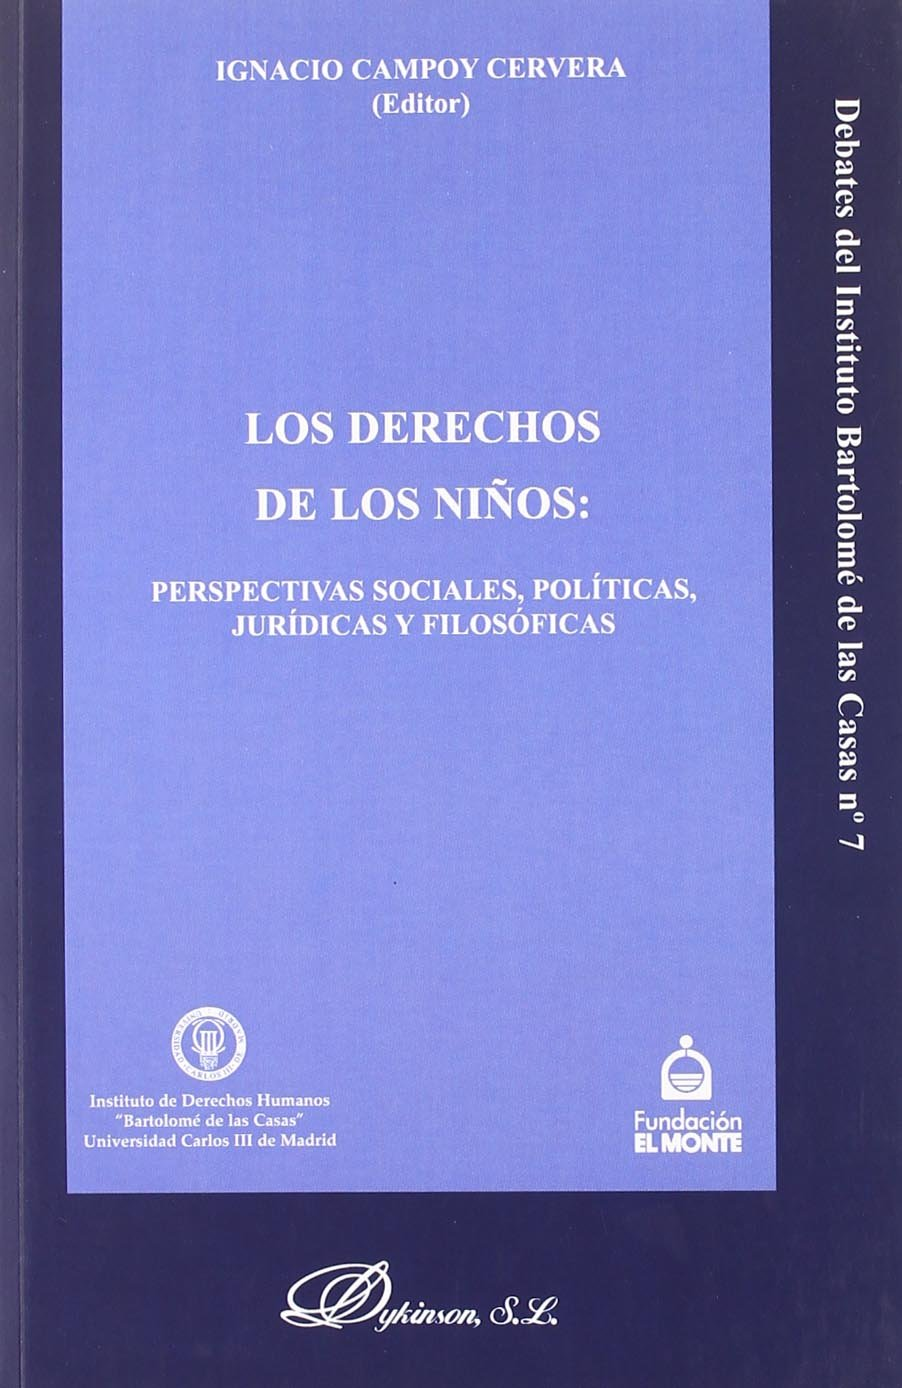 Los Derechos De Los Niños (Spanish Edition): Unknown: 9788498490442: Amazon.com: Books